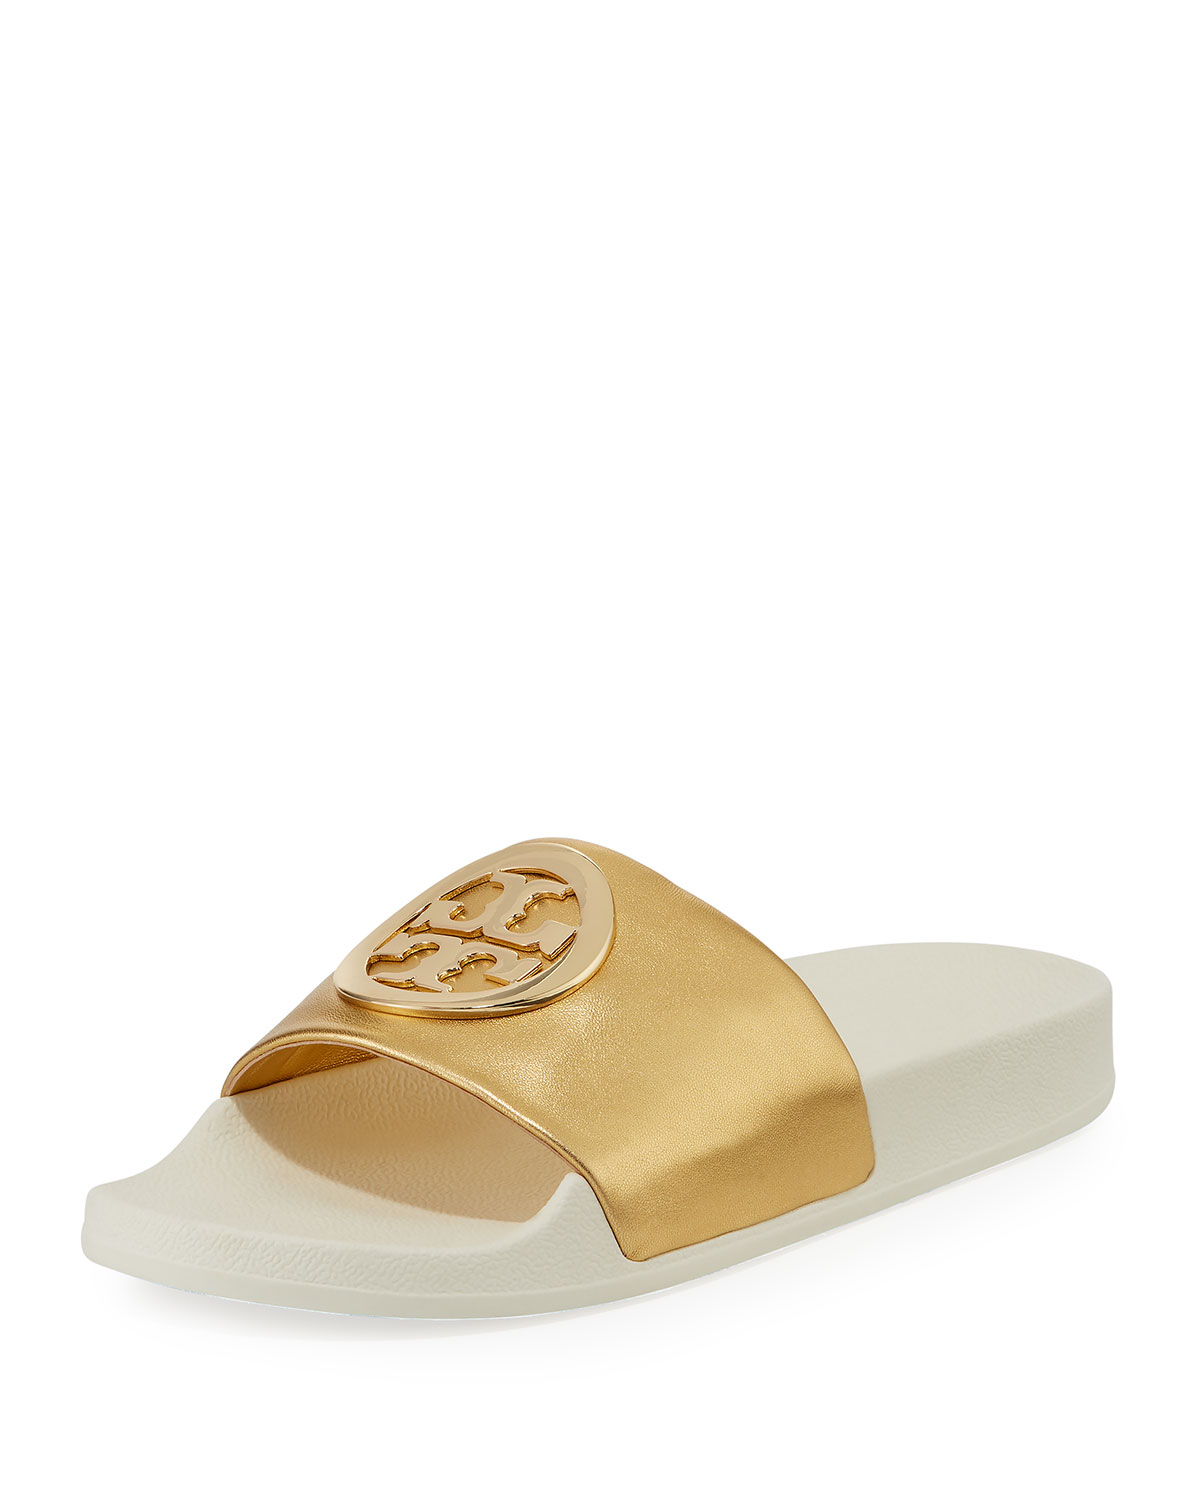 36359f7afcb1a Tory Burch Lina Metallic Leather Pool Slide Sandals